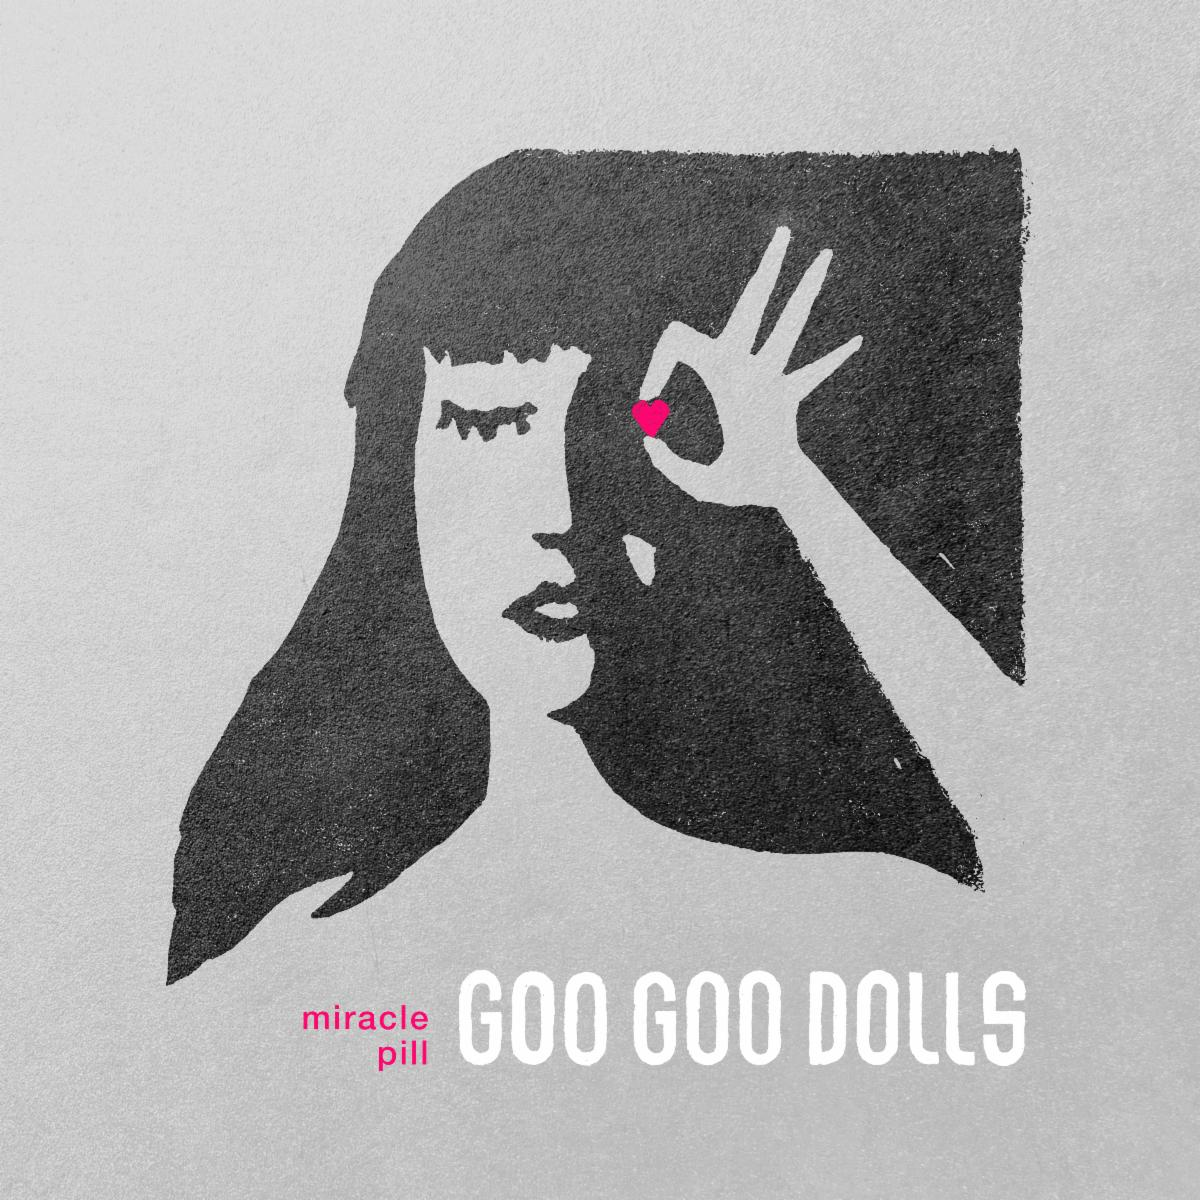 goo goo dolls, miracle pill